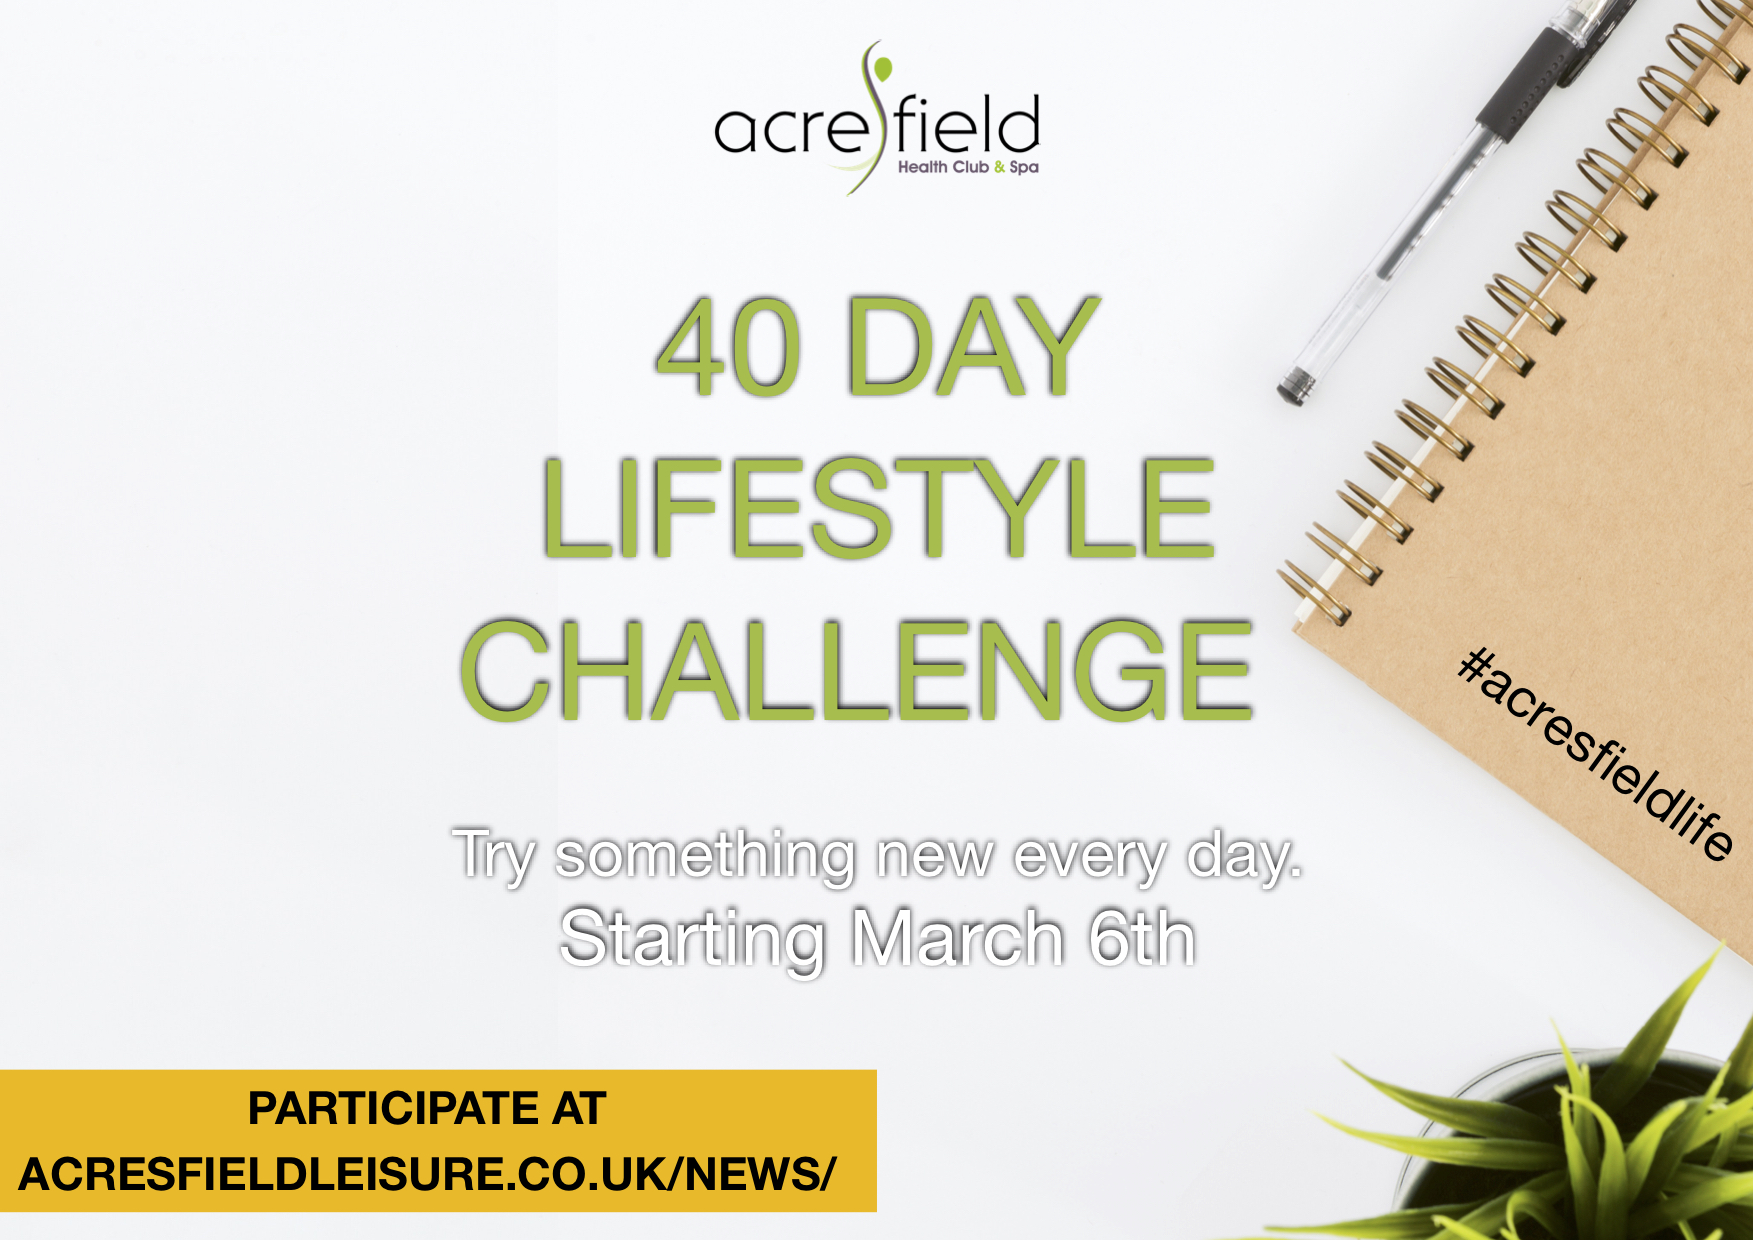 40 Day Lifestyle Challenge